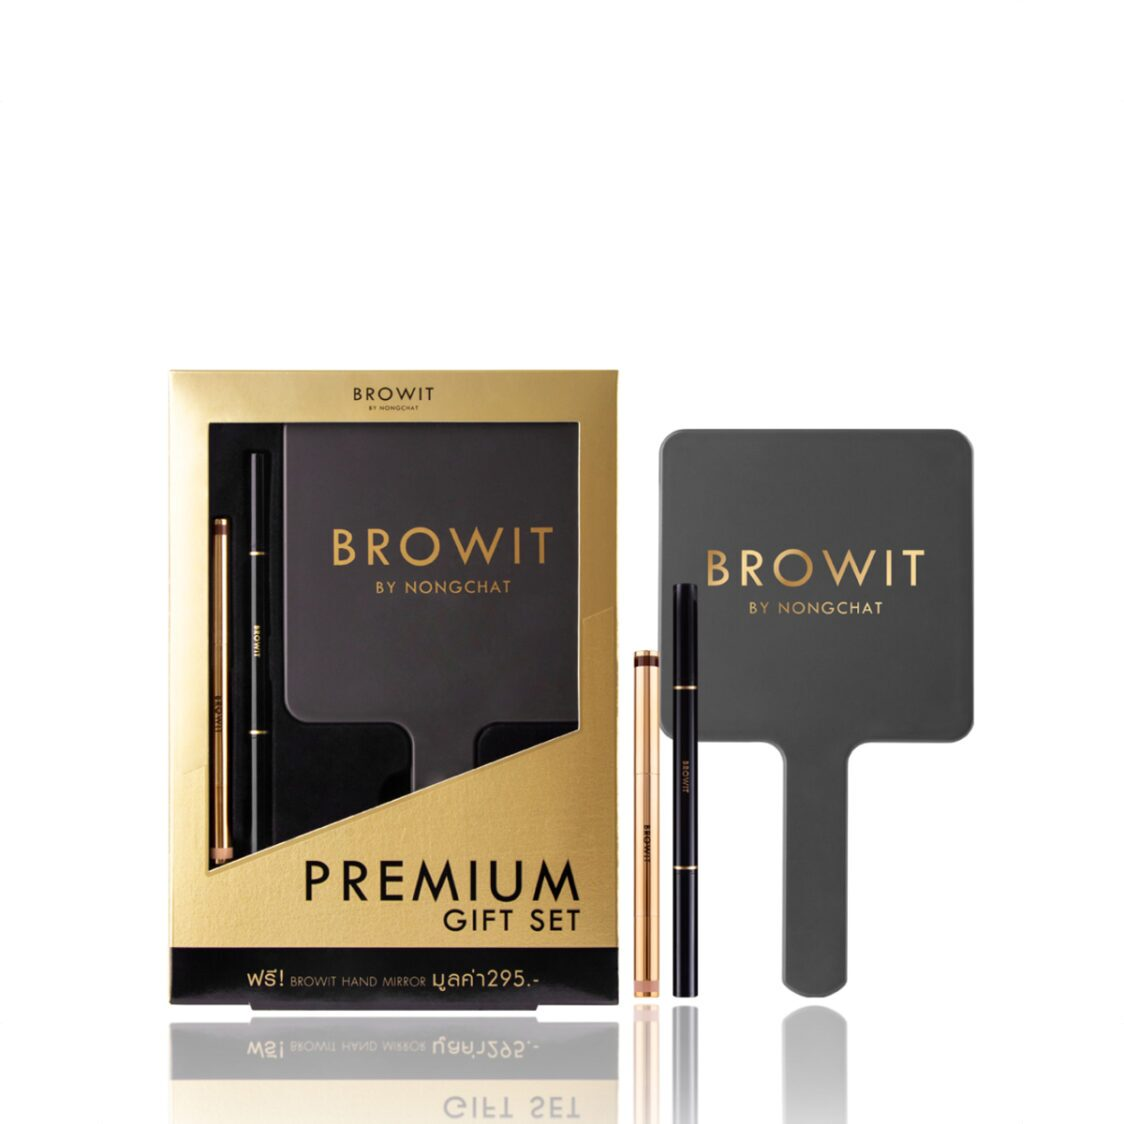 Browit Glamourous Gift Set